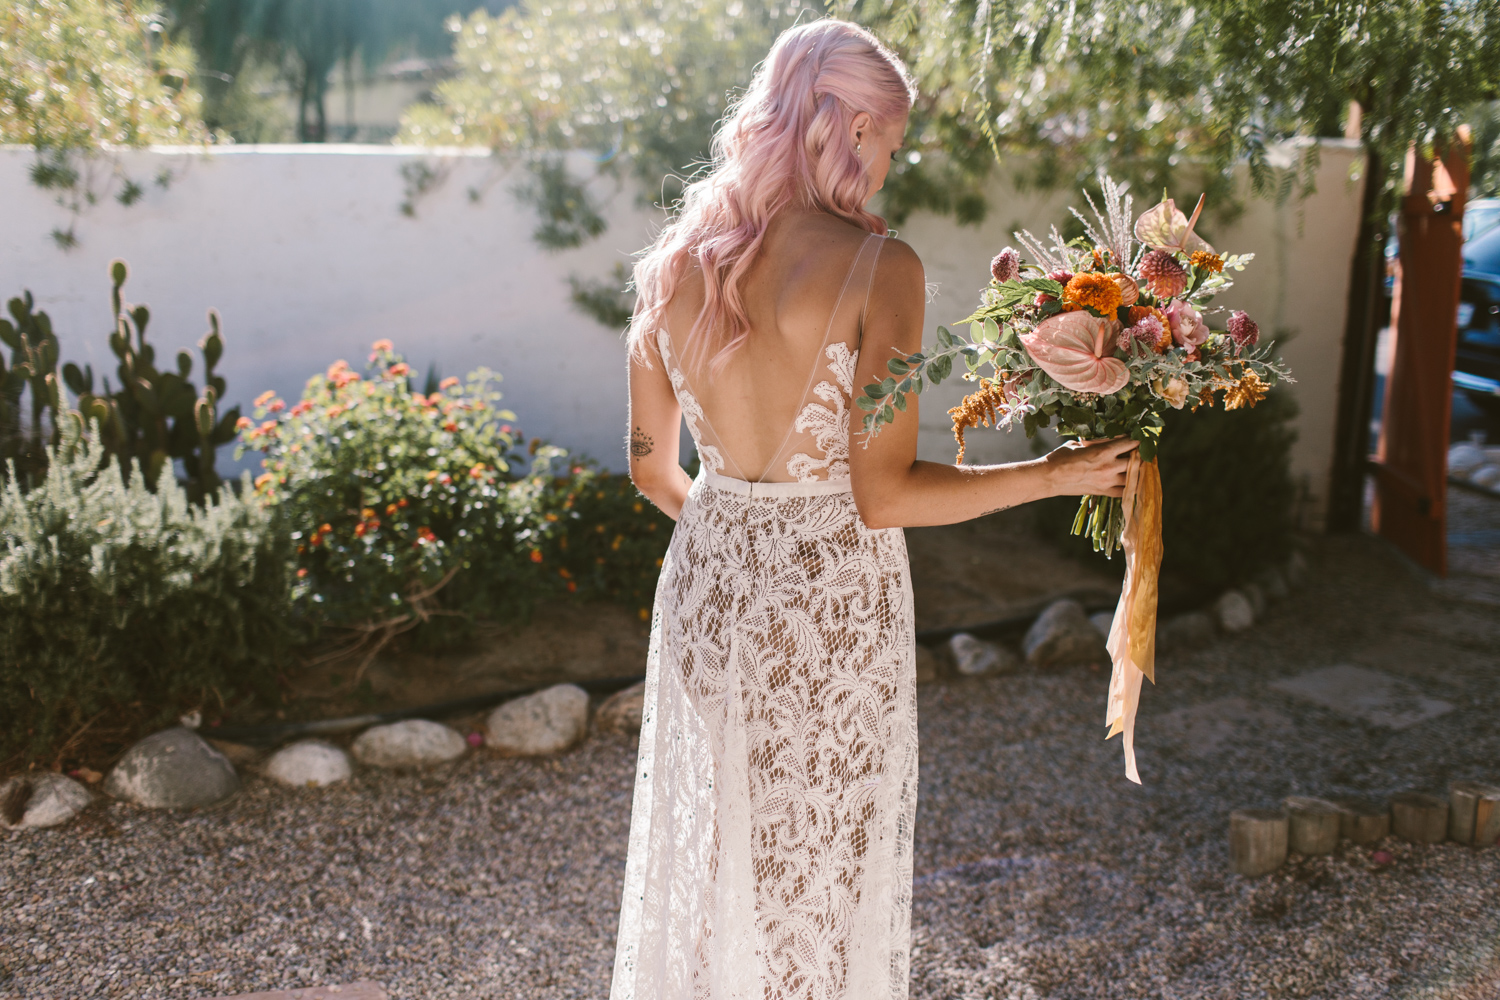 westlund-photography-palm-springs-wedding-18.jpg